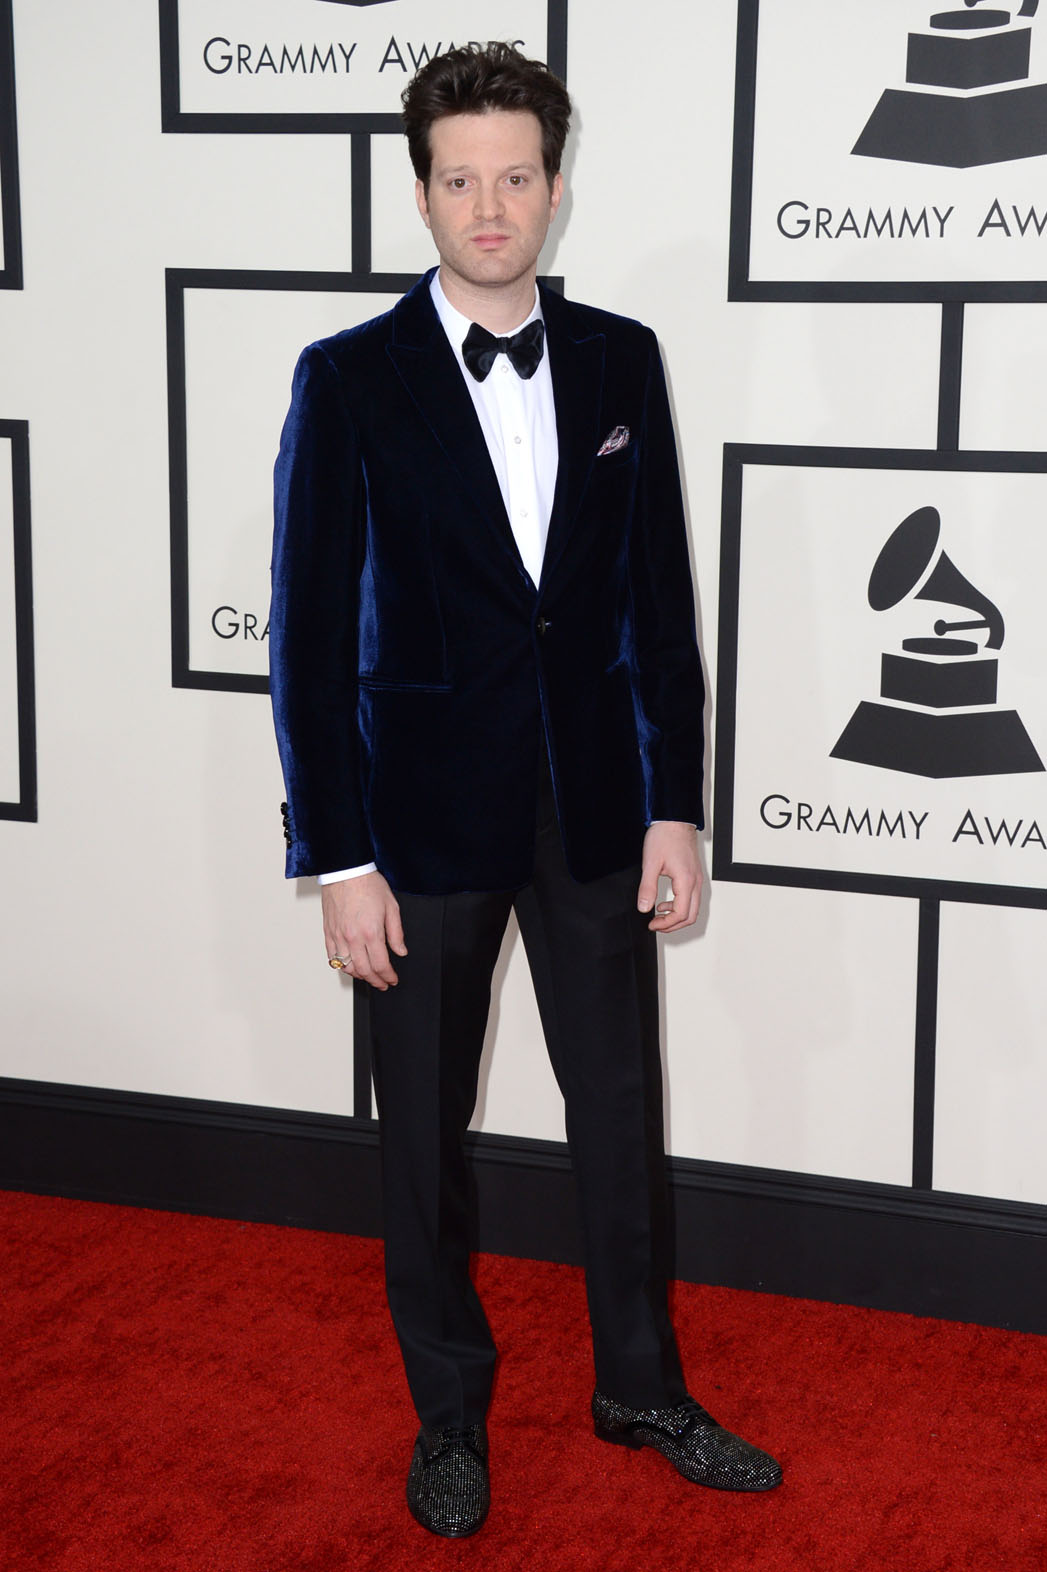 Mayer Hawthorne arrives at the 56th annual GRAMMY Awards at Staples Center on Sunday, Jan. 26, 2014, in Los Angeles. (Photo by Jordan Strauss/Invision/AP)